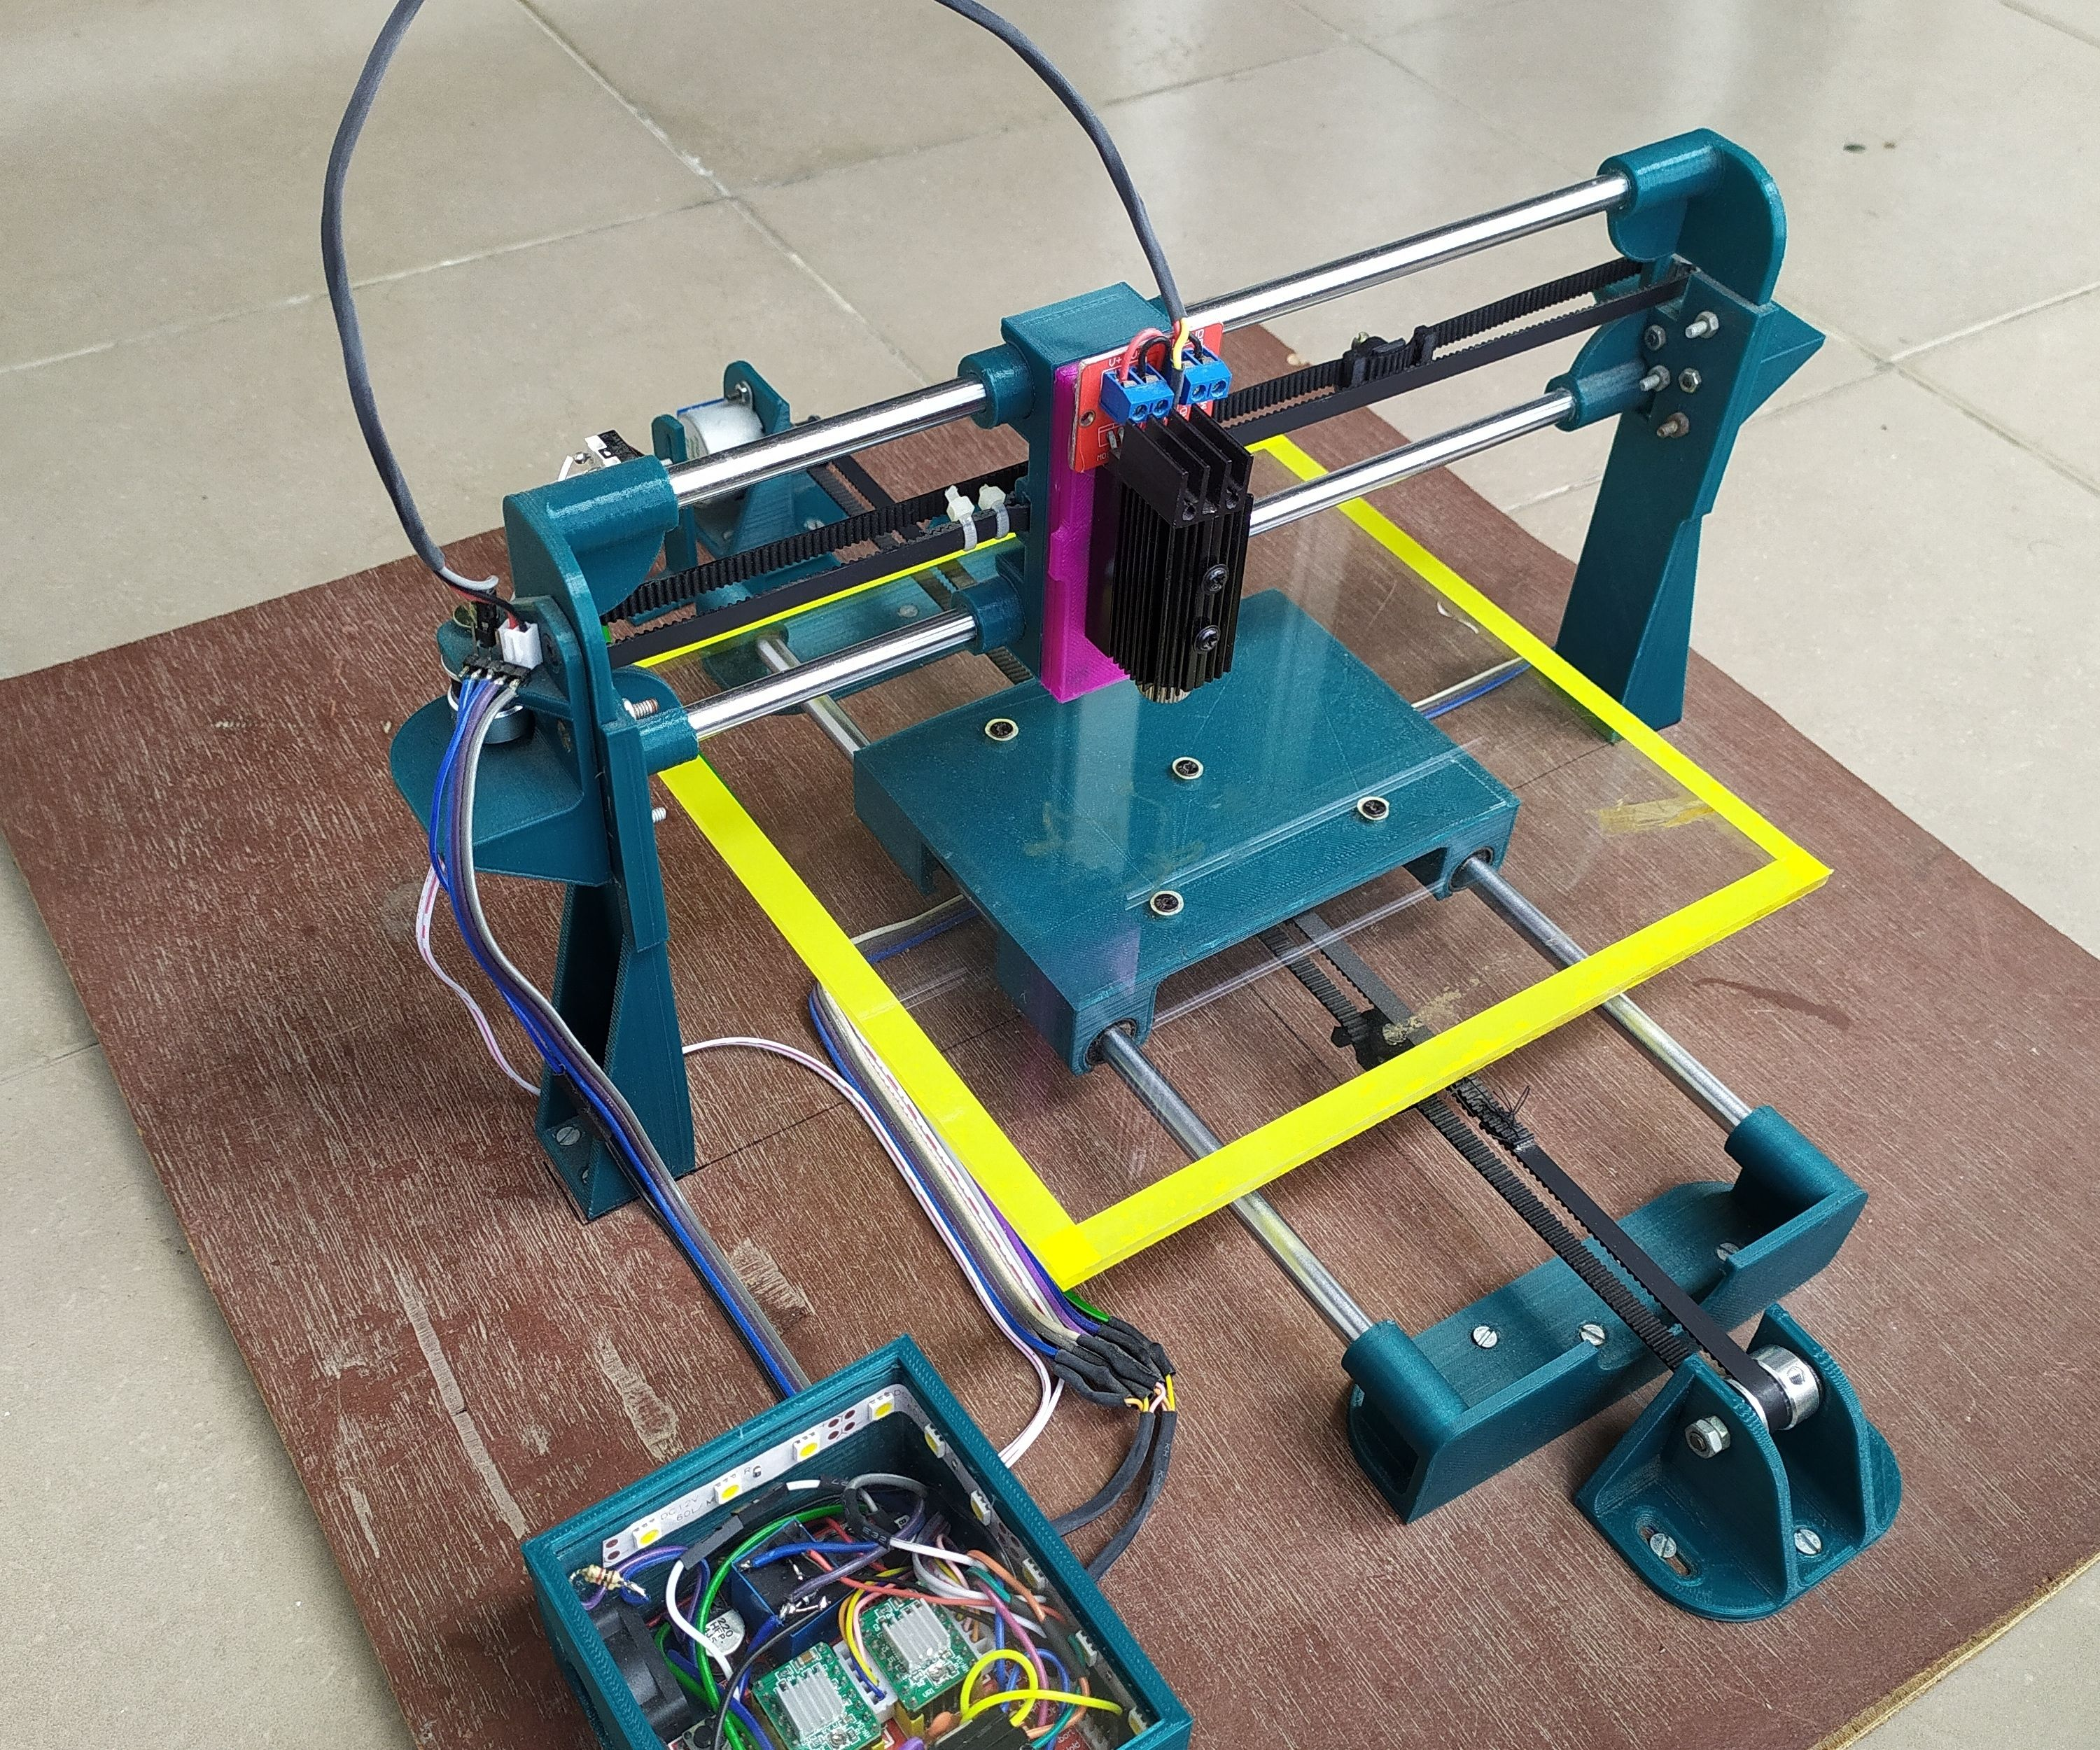 DESIGN AND BUILD a WIRELESS LASER ENGRAVER CUM PEN PLOTTER USING FUSION 360 AND 3D PRINTING